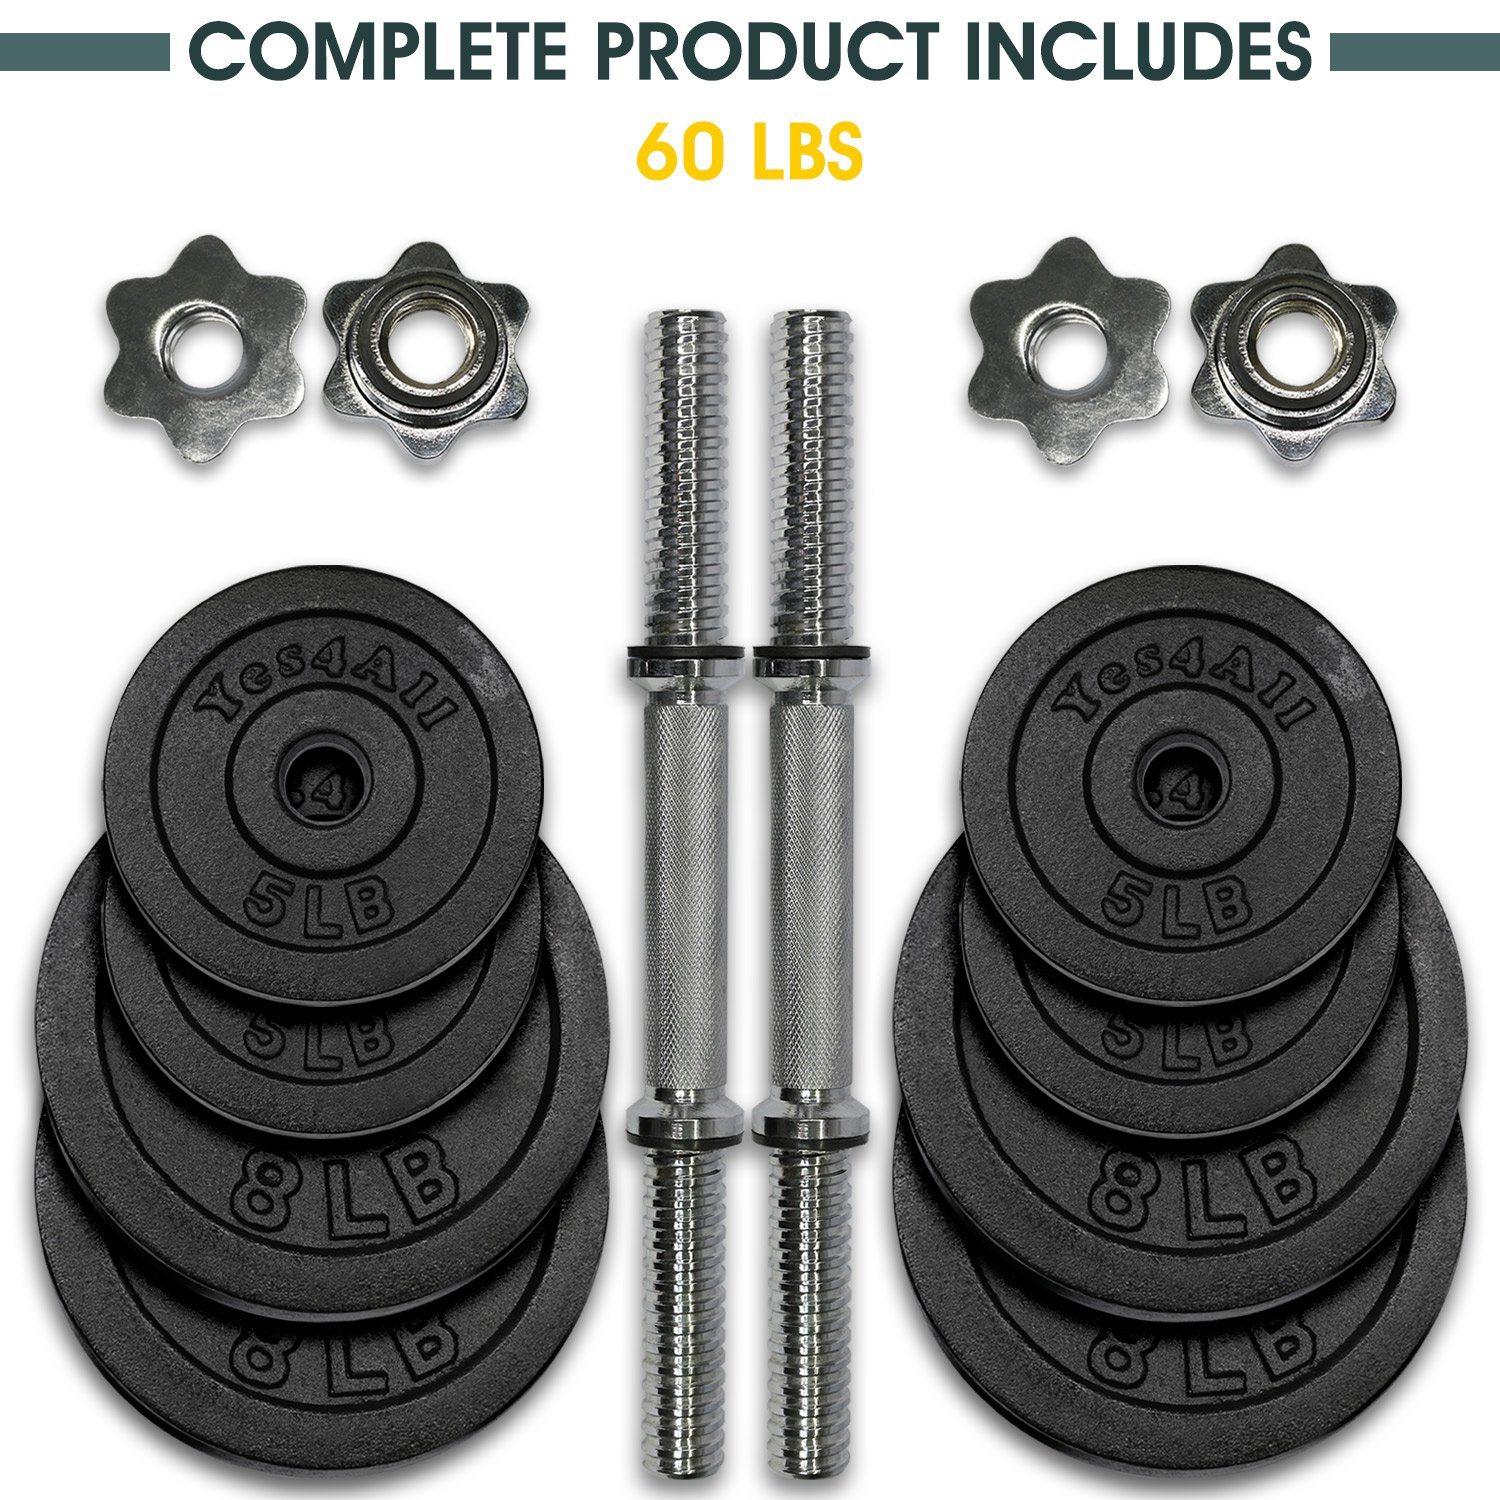 Yes4All Adjustable Dumbbells - 60 lb Dumbbell Weights (Pair) by Yes4All (Image #4)